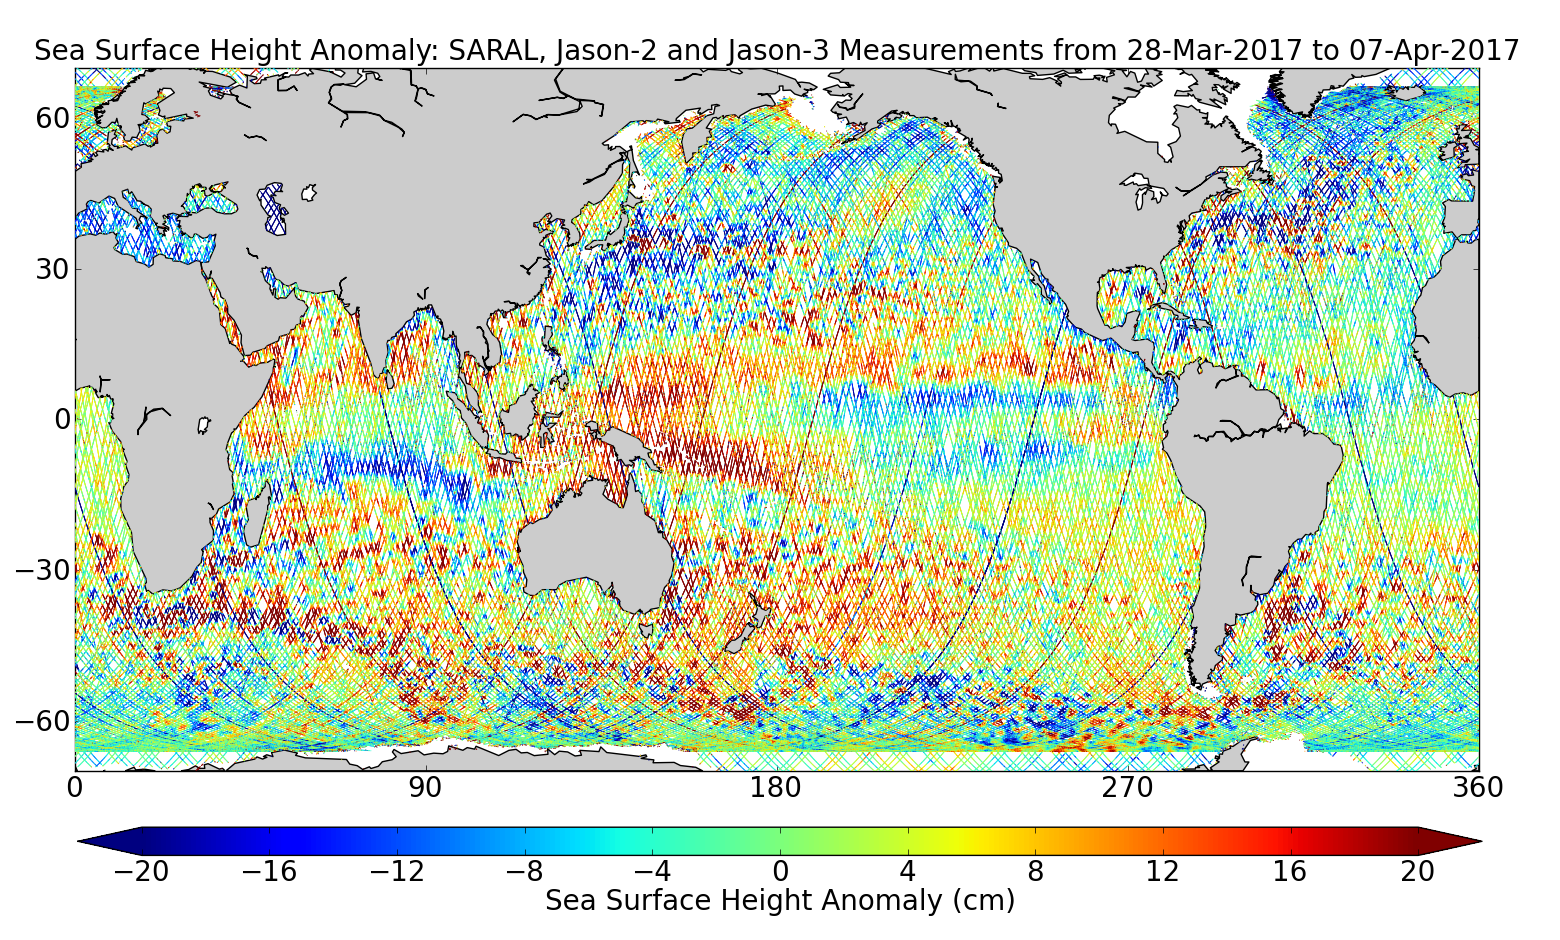 Sea Surface Height Anomaly: SARAL, Jason-2 and Jason-3 Measurements from 28-Mar-2017 to 07-Apr-2017